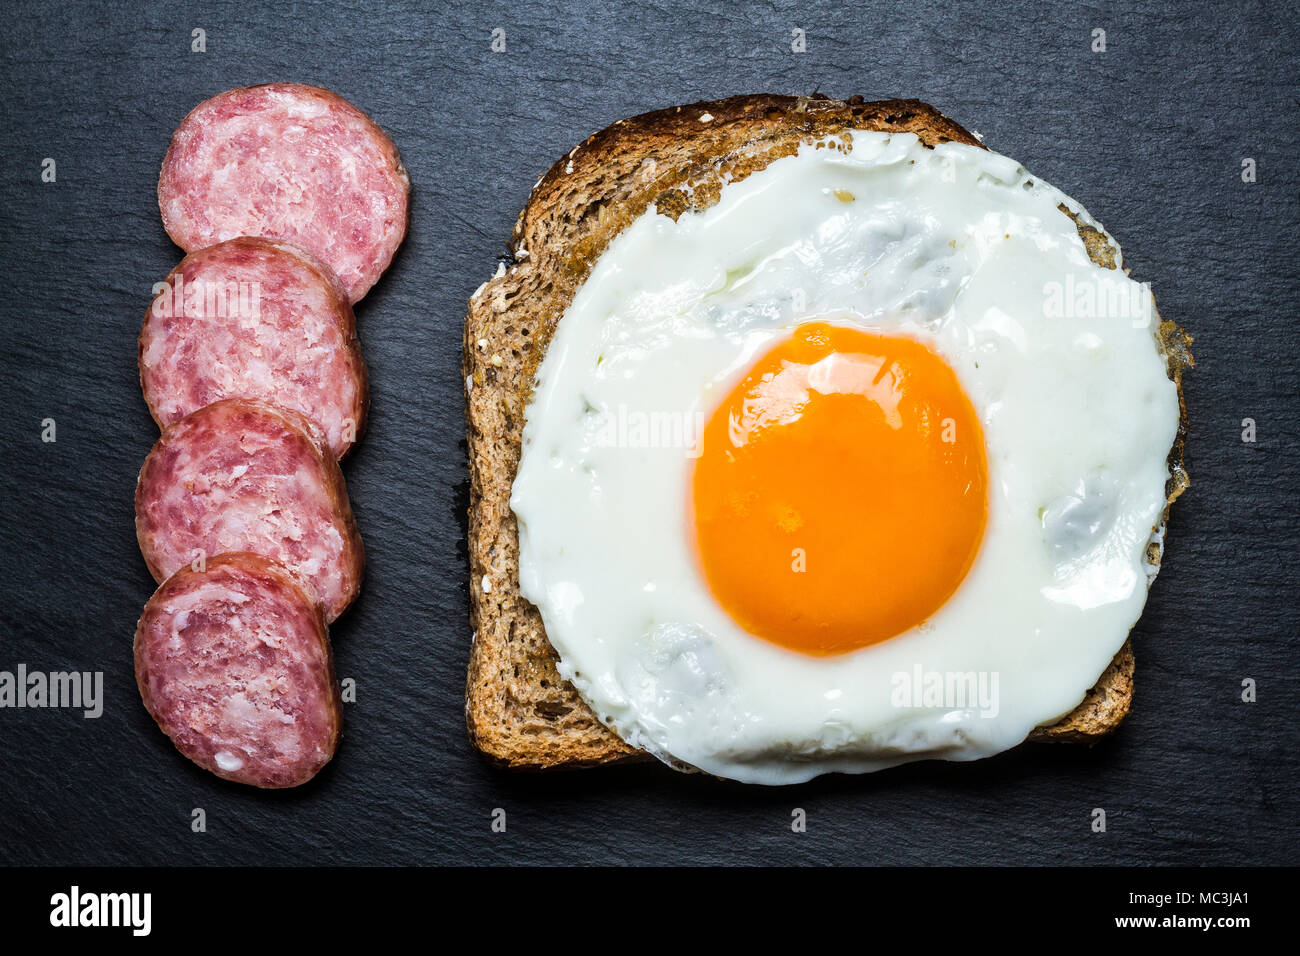 Fried egg on a toast and silced sausage. Florianopolis, Santa Catarina, Brazil. Stock Photo